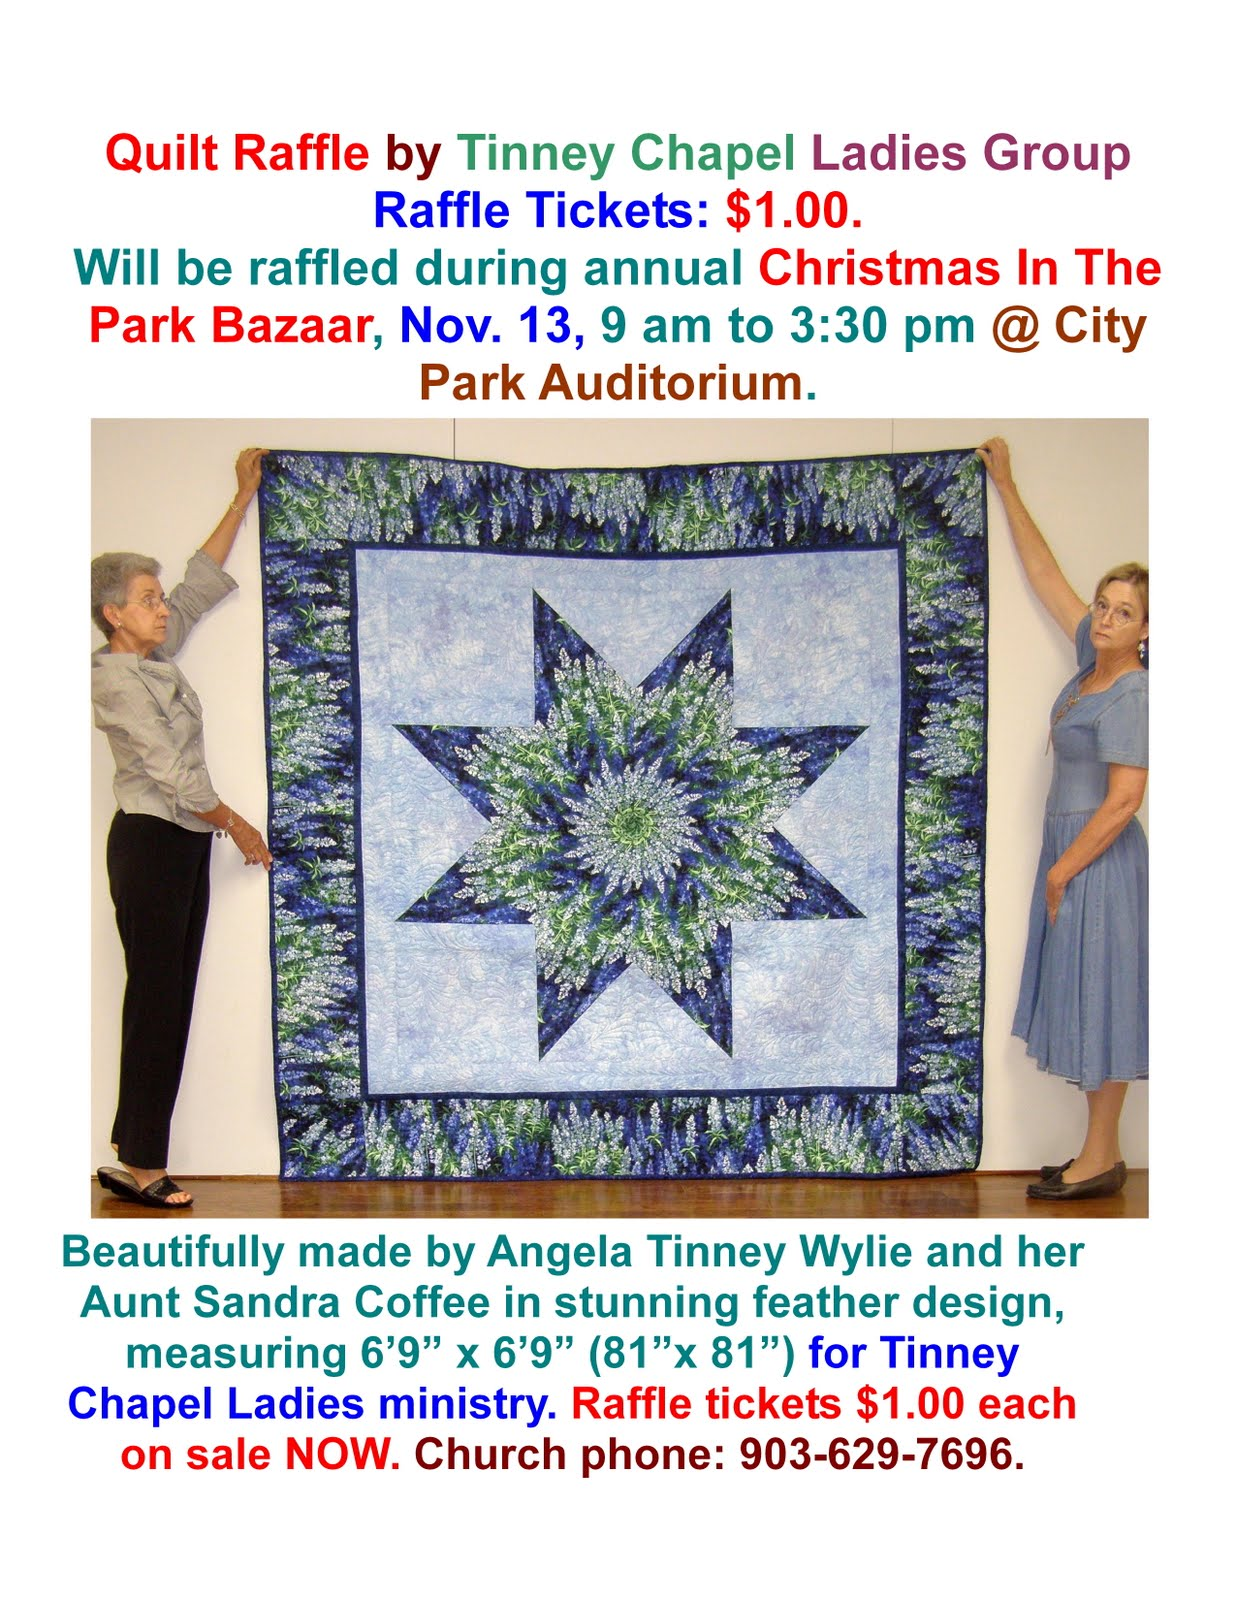 Tinney Chapel Today: Quilt Raffle by Tinney Chapel Ladies Group